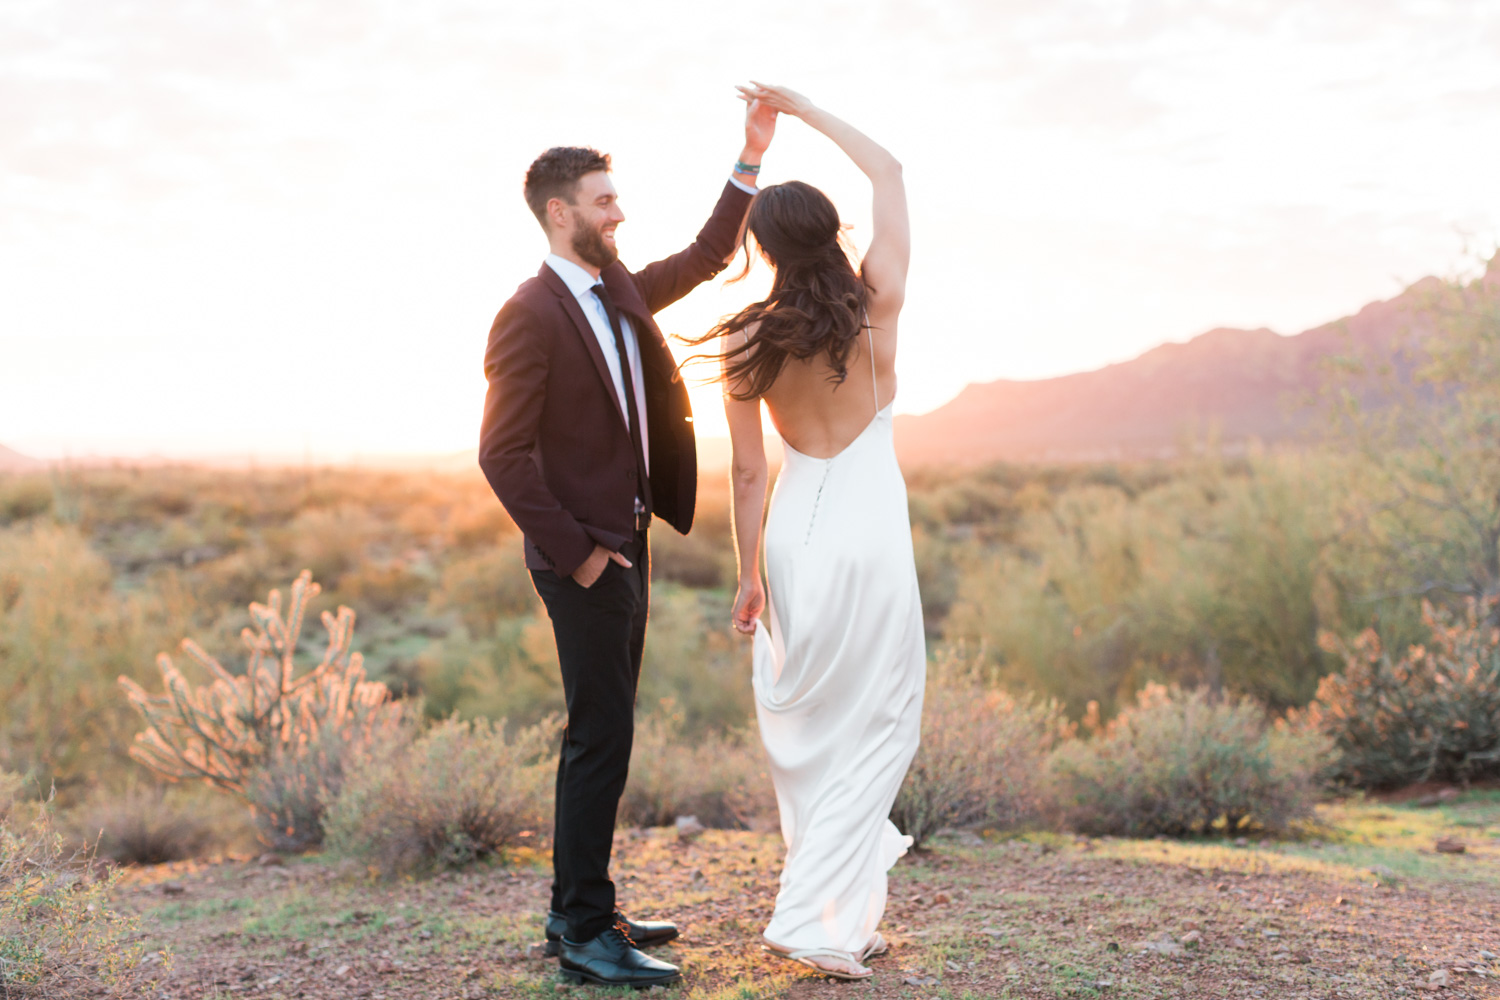 Groom twirling his bride in the desert on their wedding day.